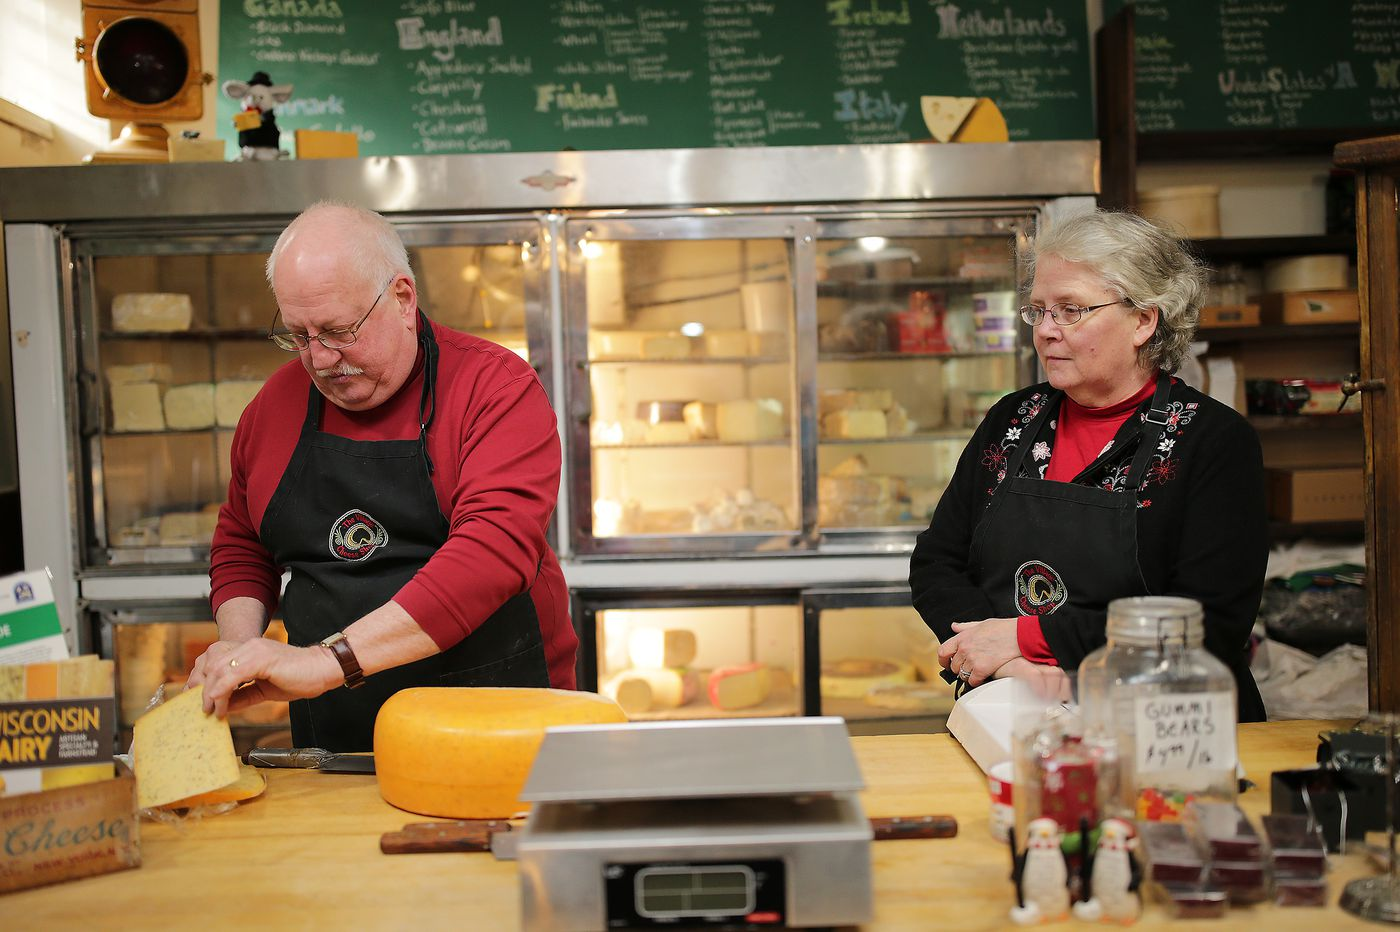 Breaking free of brie, the mom and pop behind New Jersey's Village Cheese Shop say it's time to retire